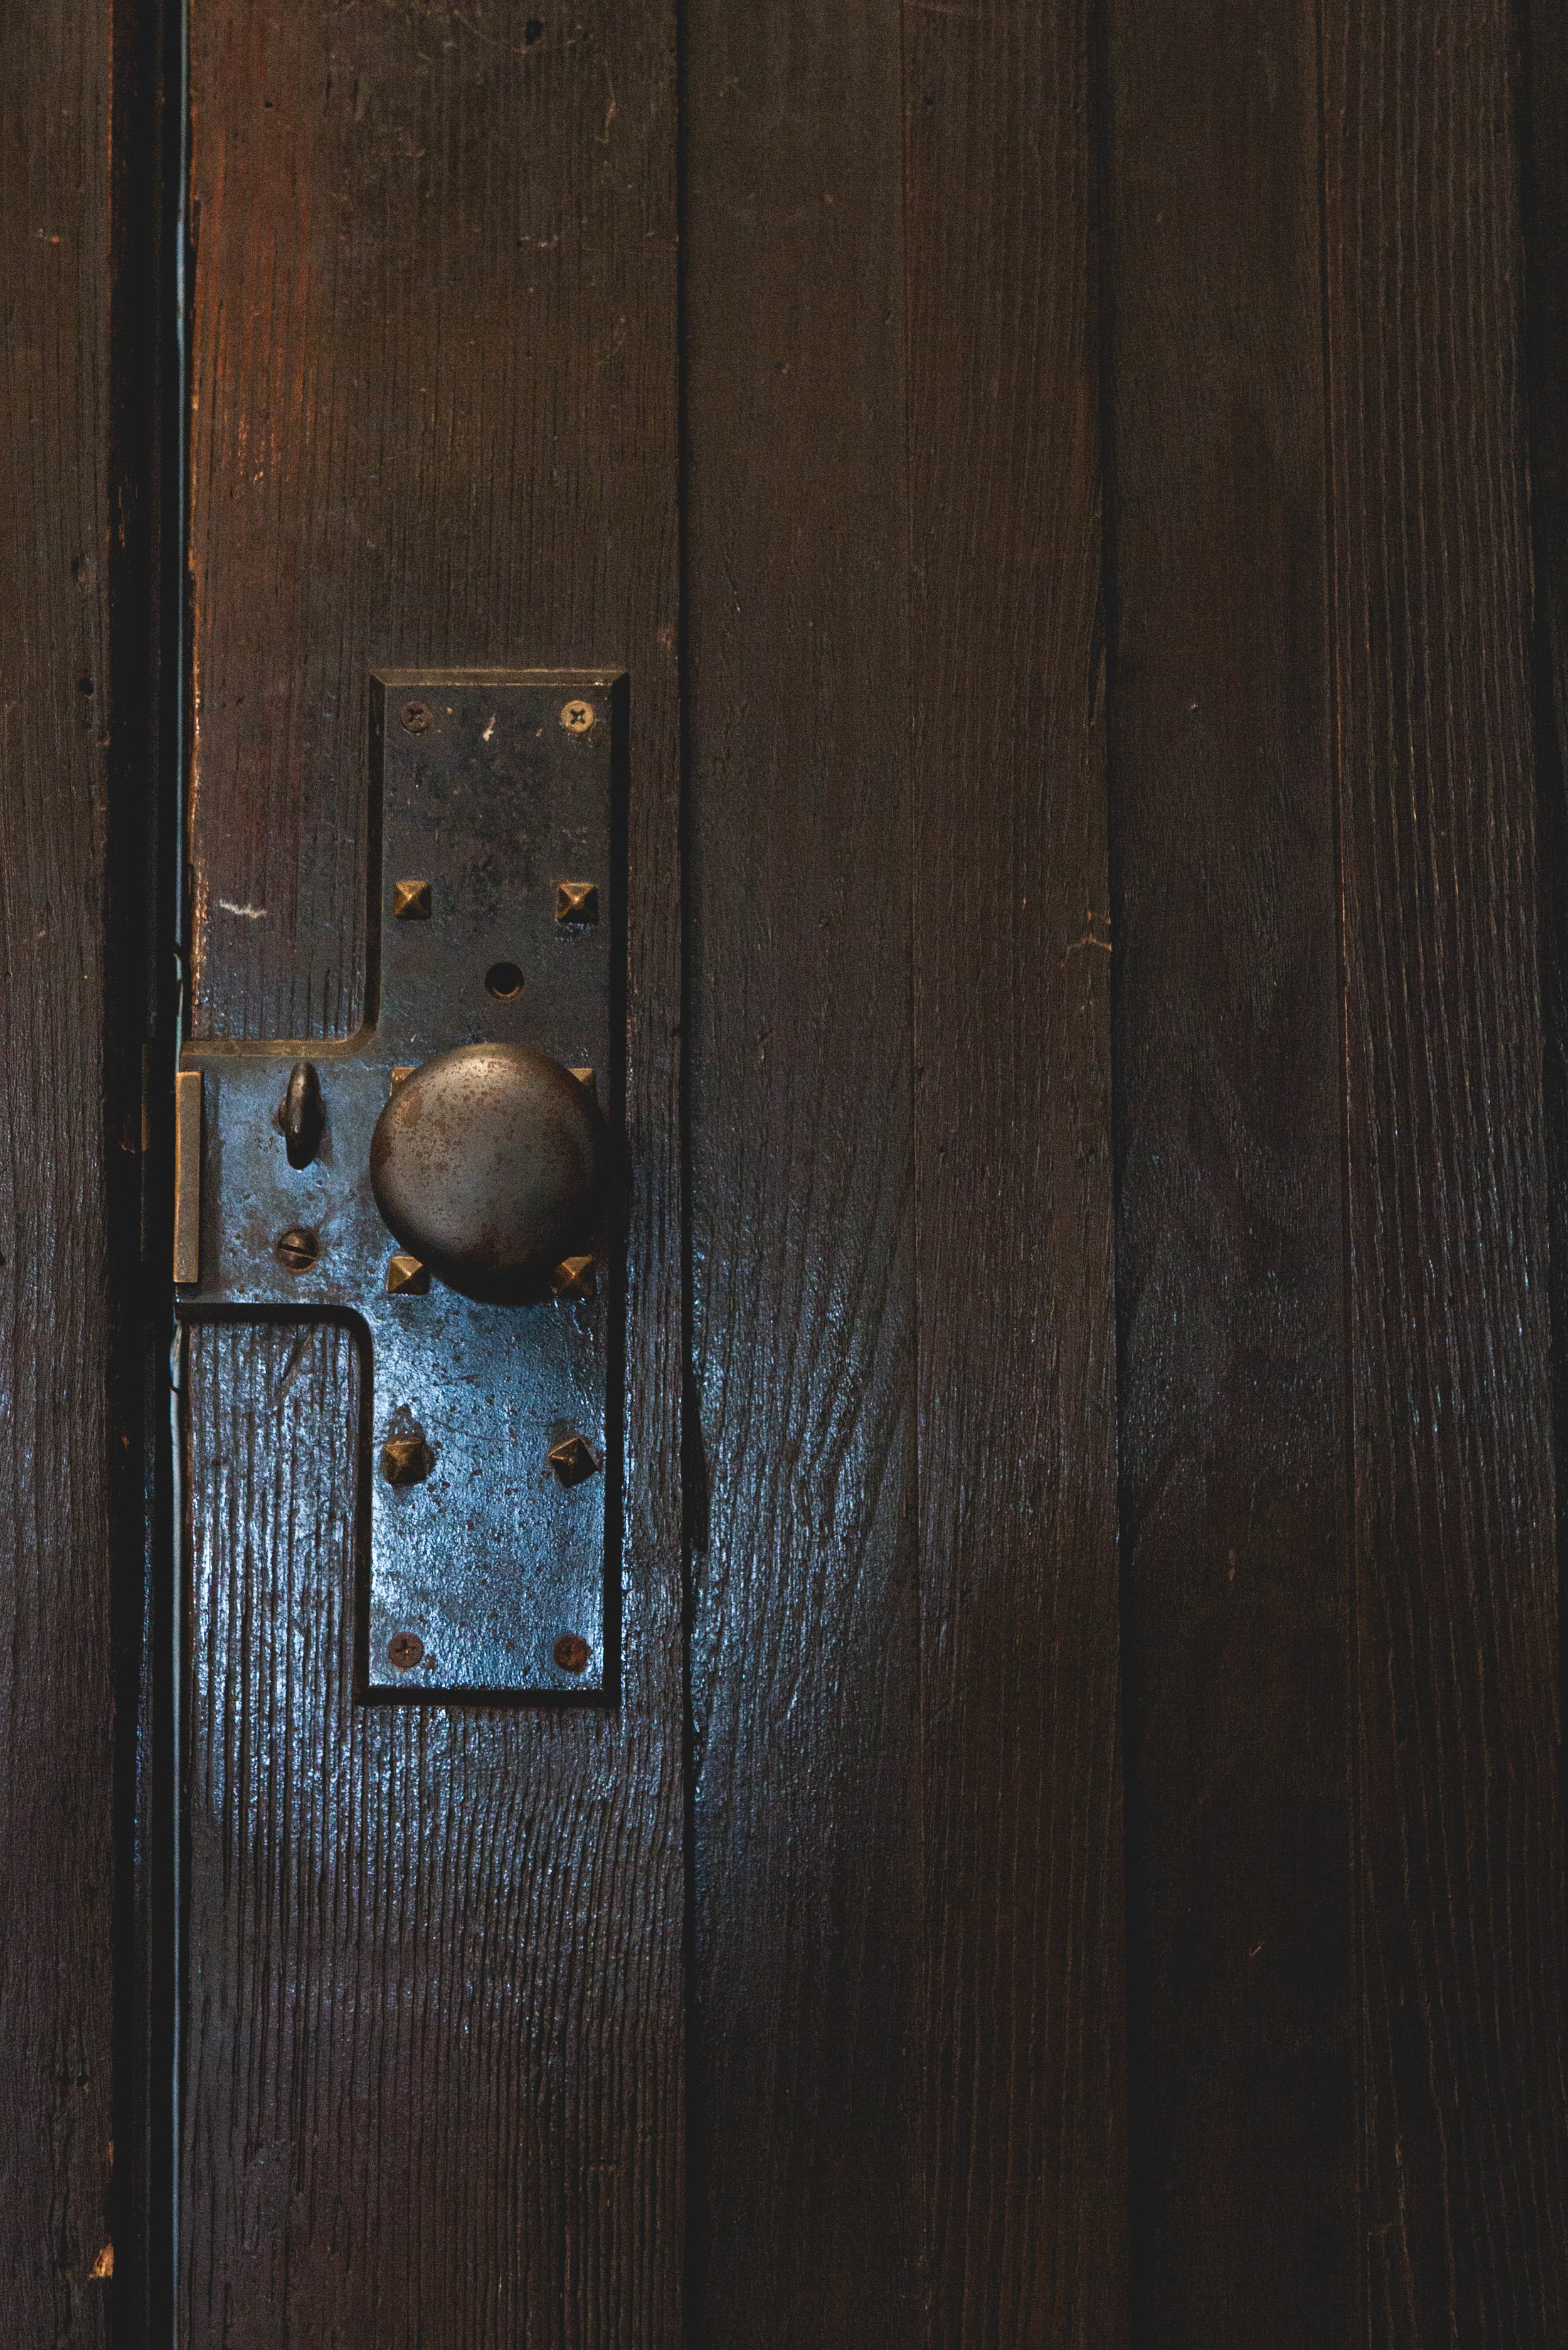 All of the doors are original. The house was built in 1920, so the doors are so substantial and the hardware is just so cool!